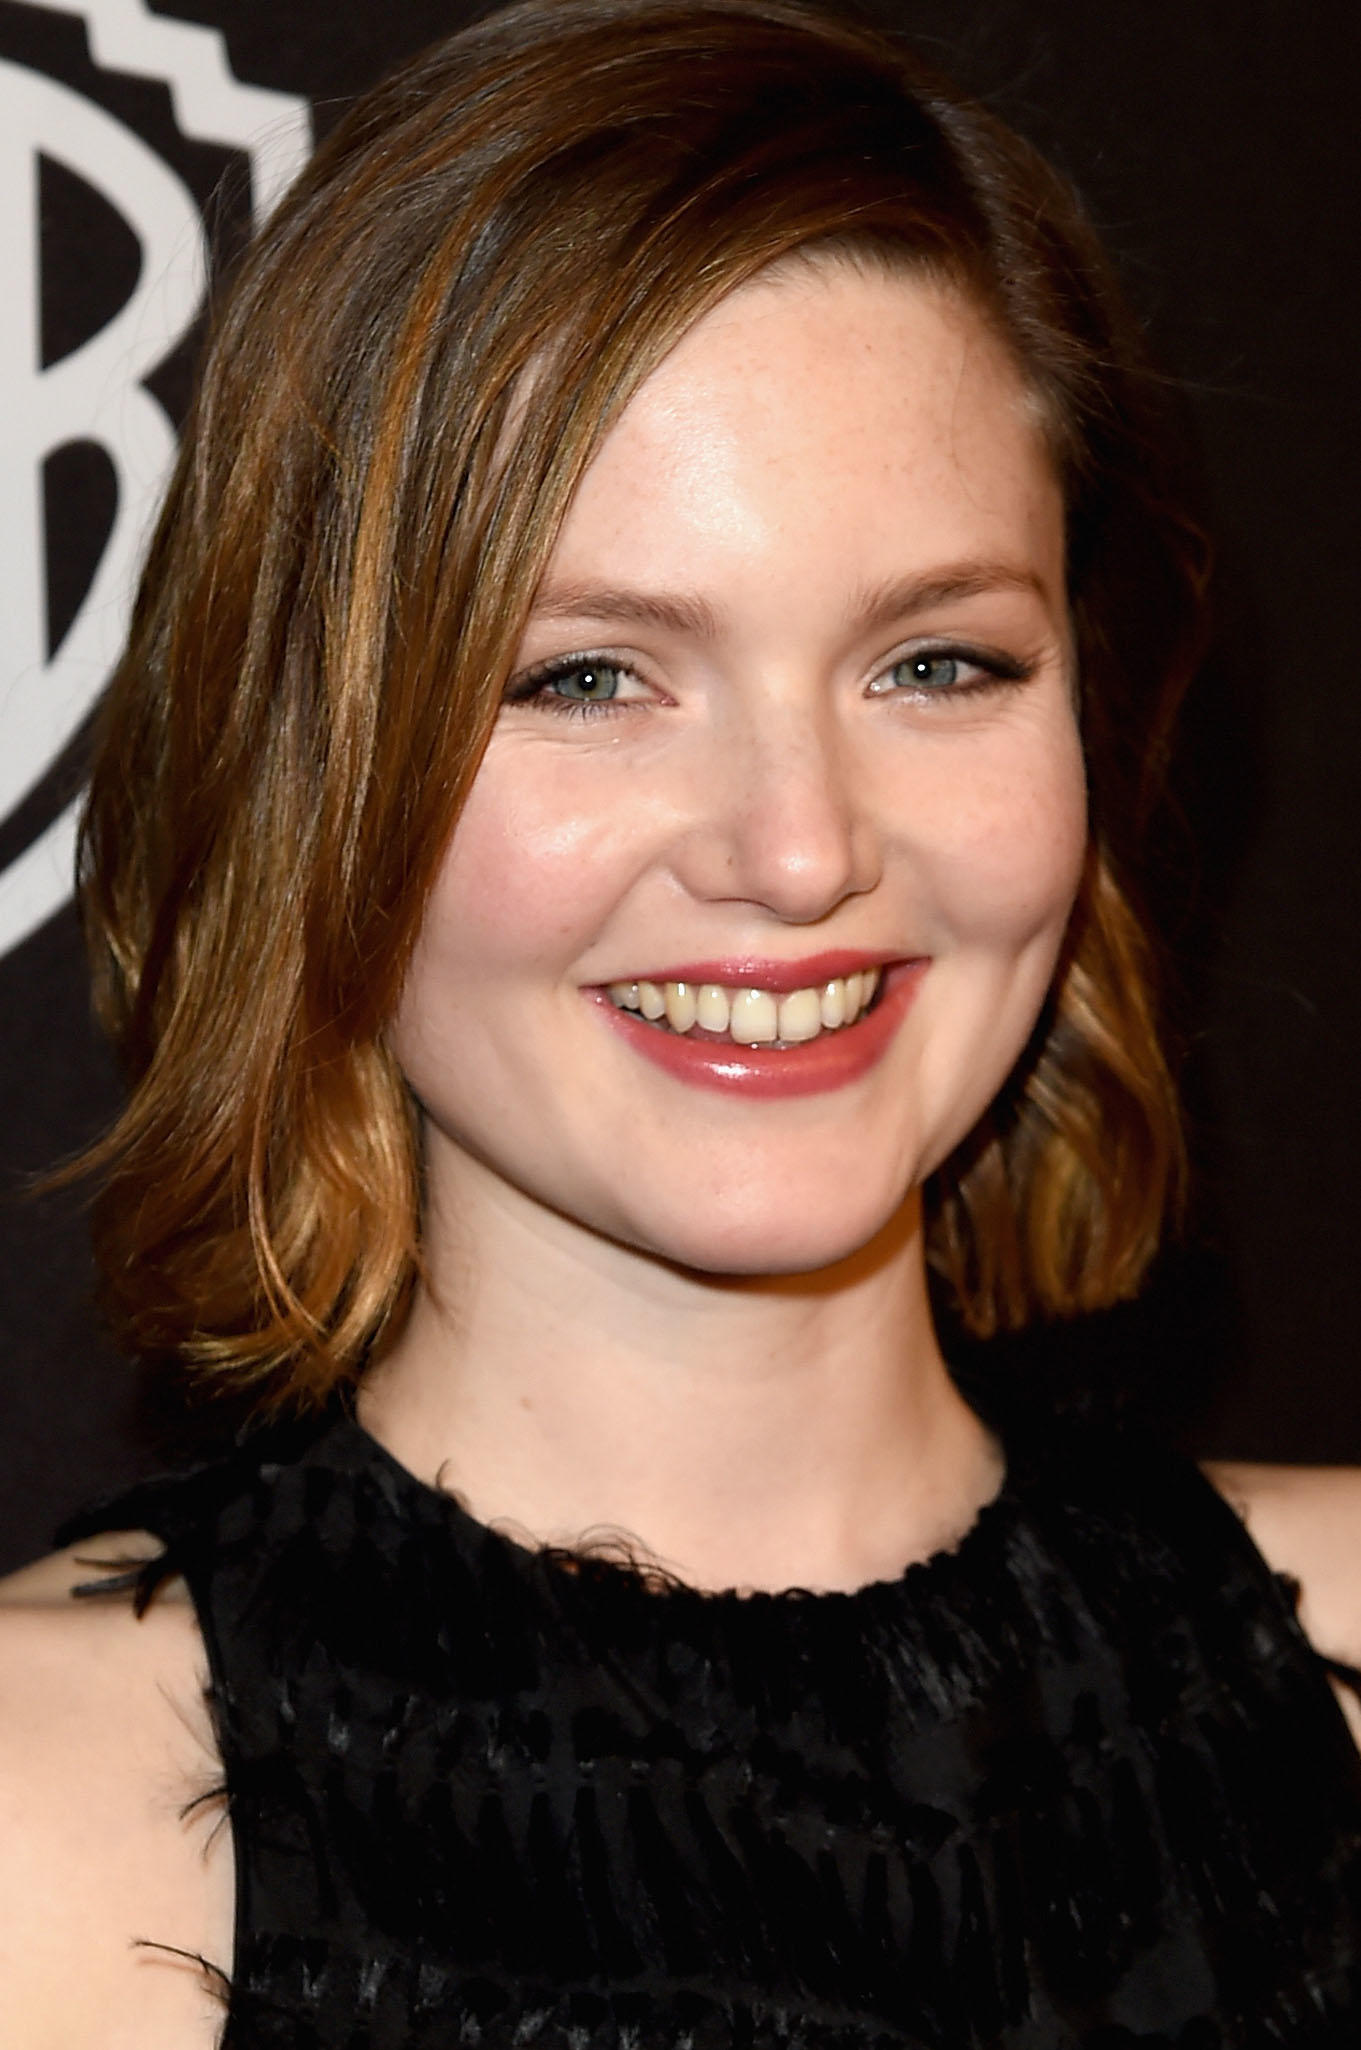 Holliday Grainger at the 2016 InStyle and Warner Bros. Golden Globe Awards post-party in Beverly Hills, CA.